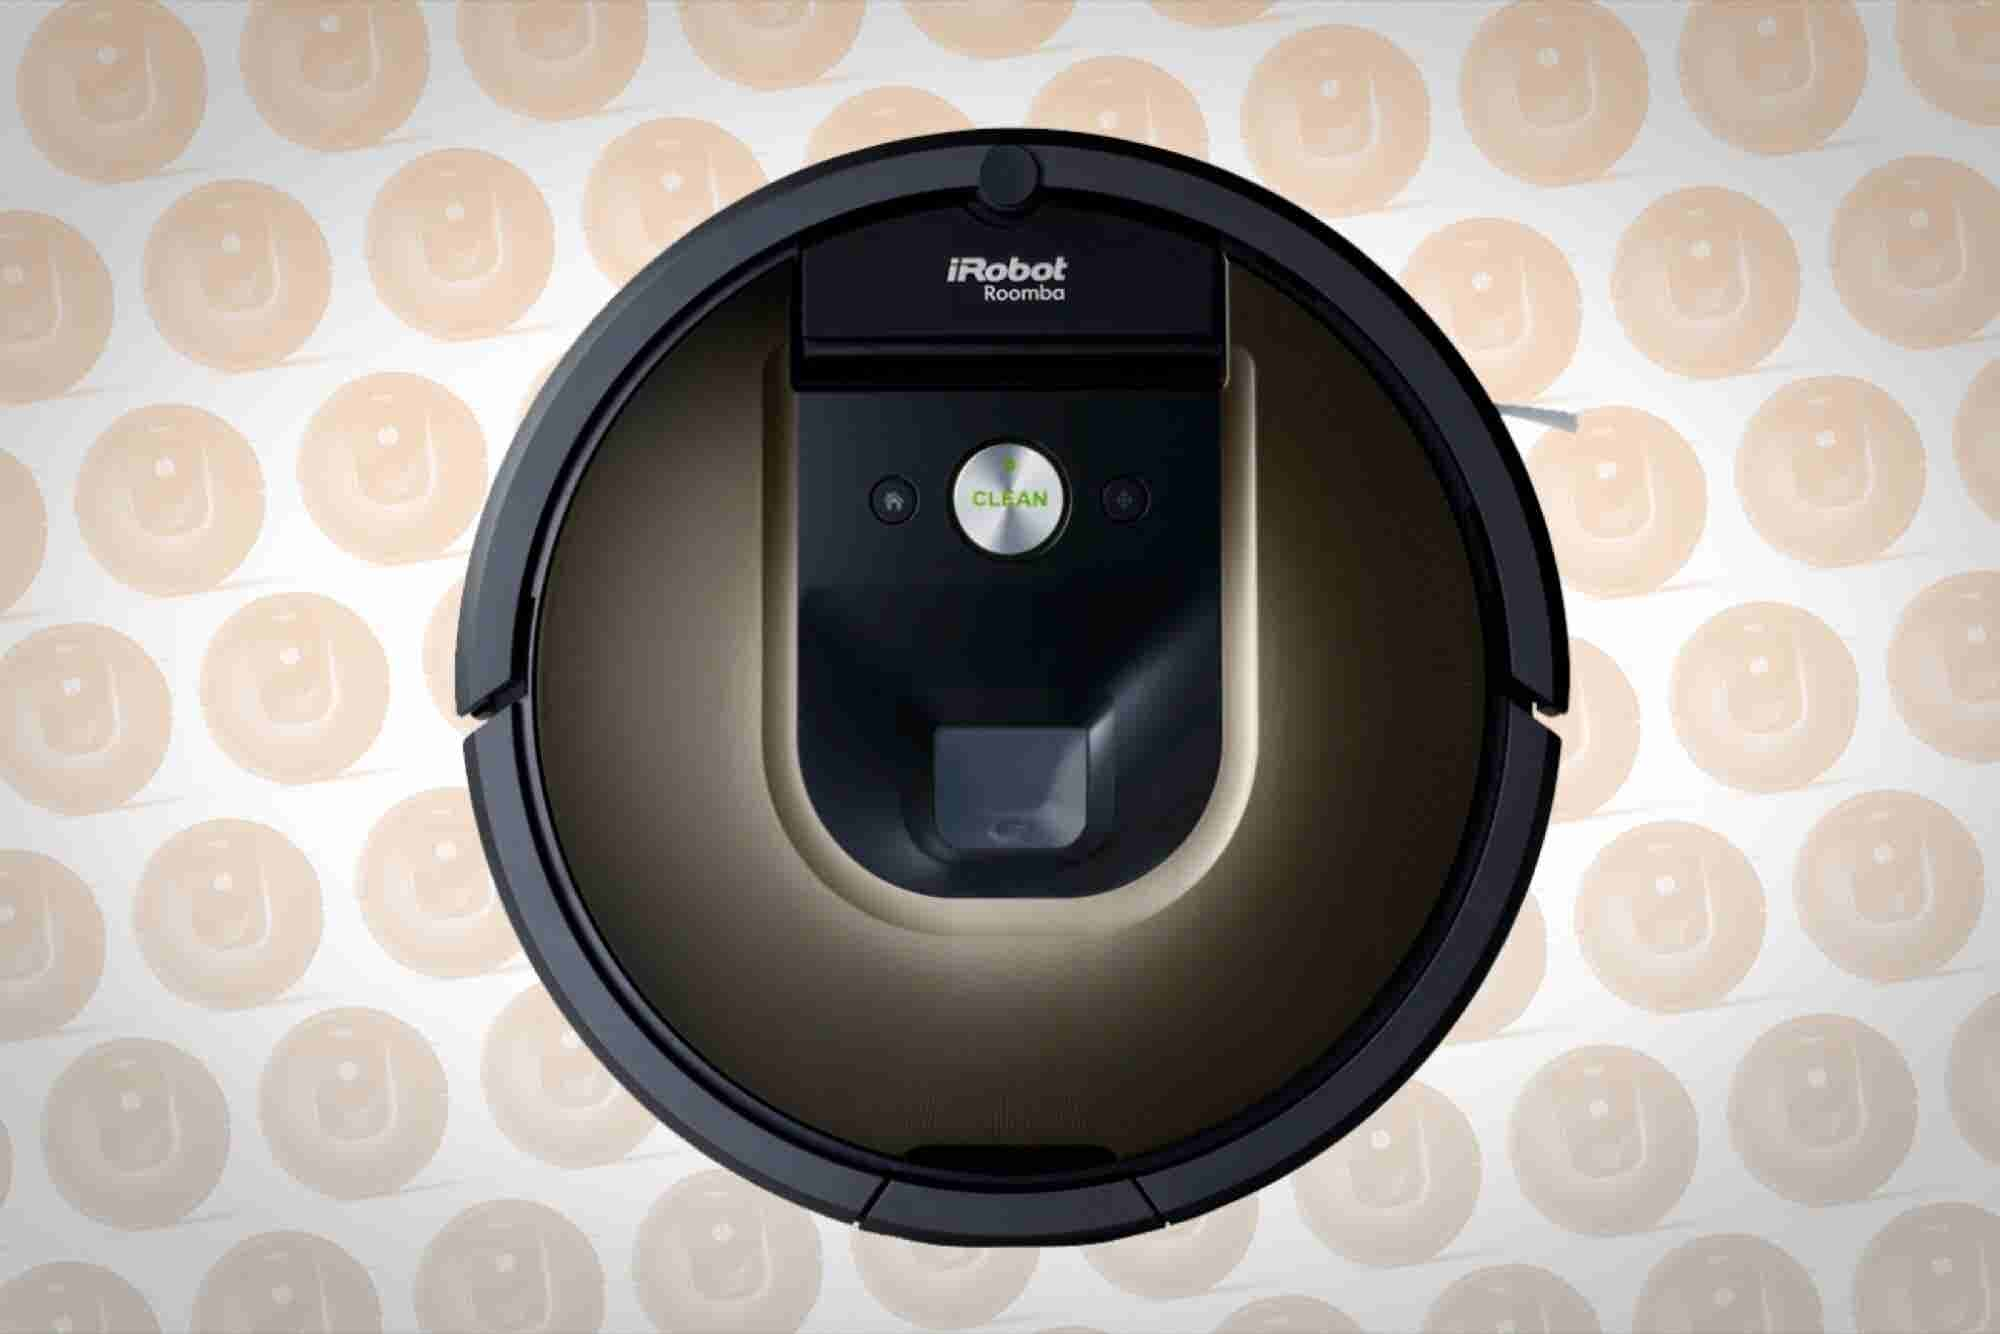 Roomba Once Was Blind, But Now It Sees